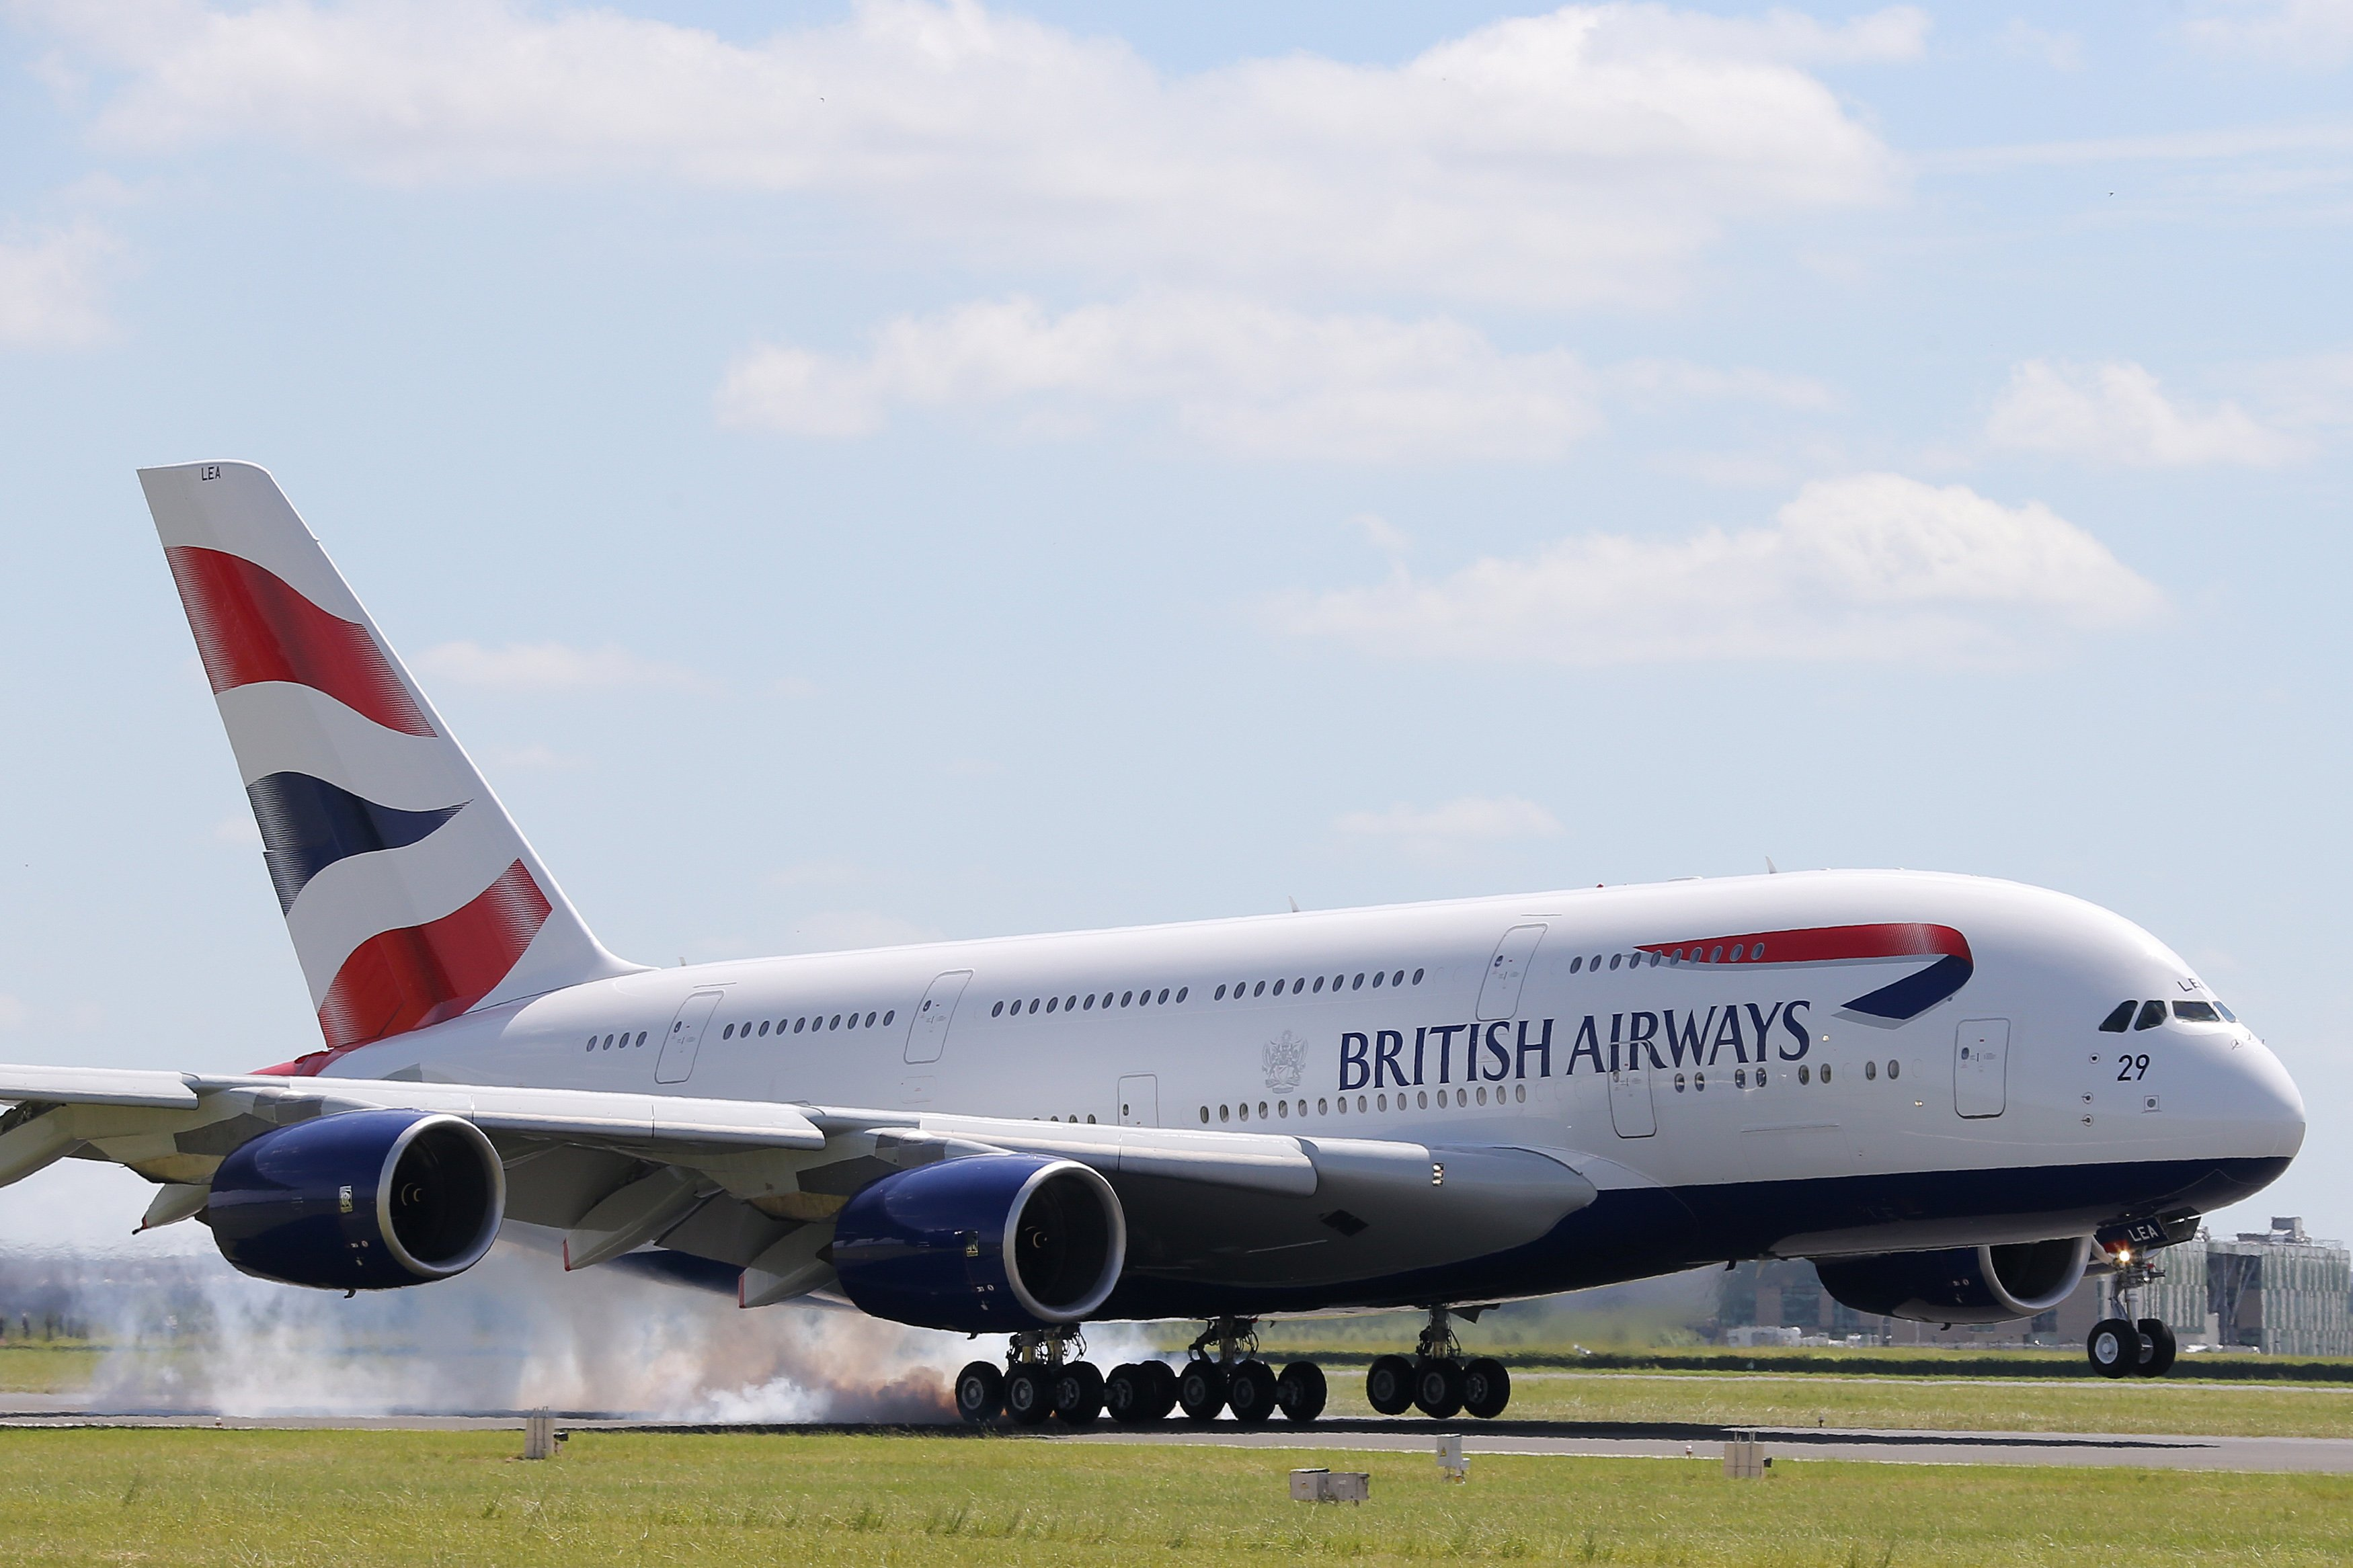 a380 british airways touchdown Man vs Airbus A380